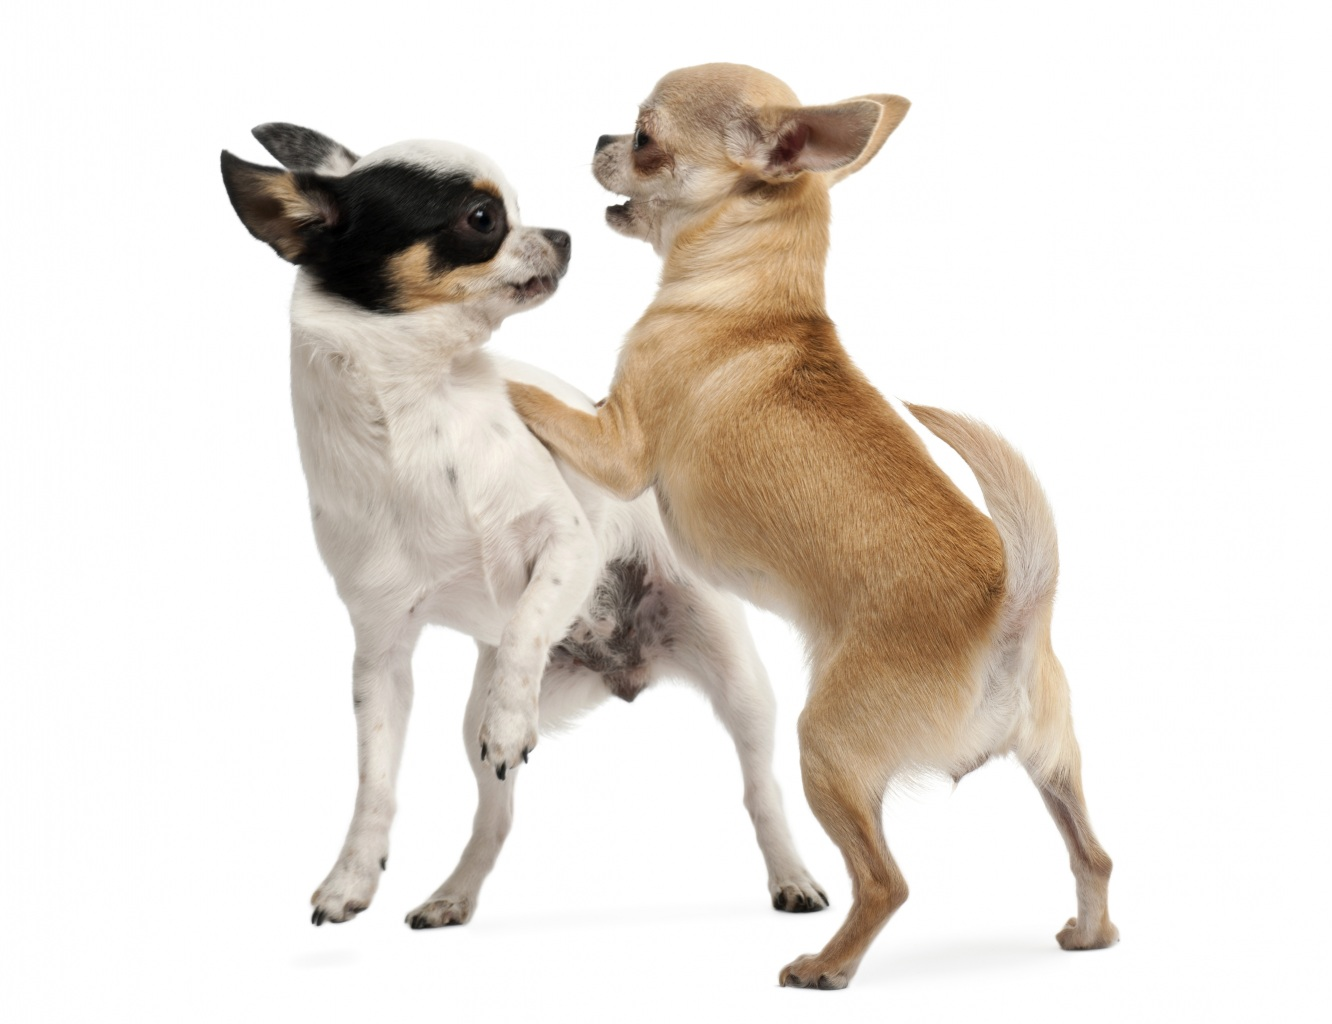 Dogs_Two_Chihuahua_443010.jpg